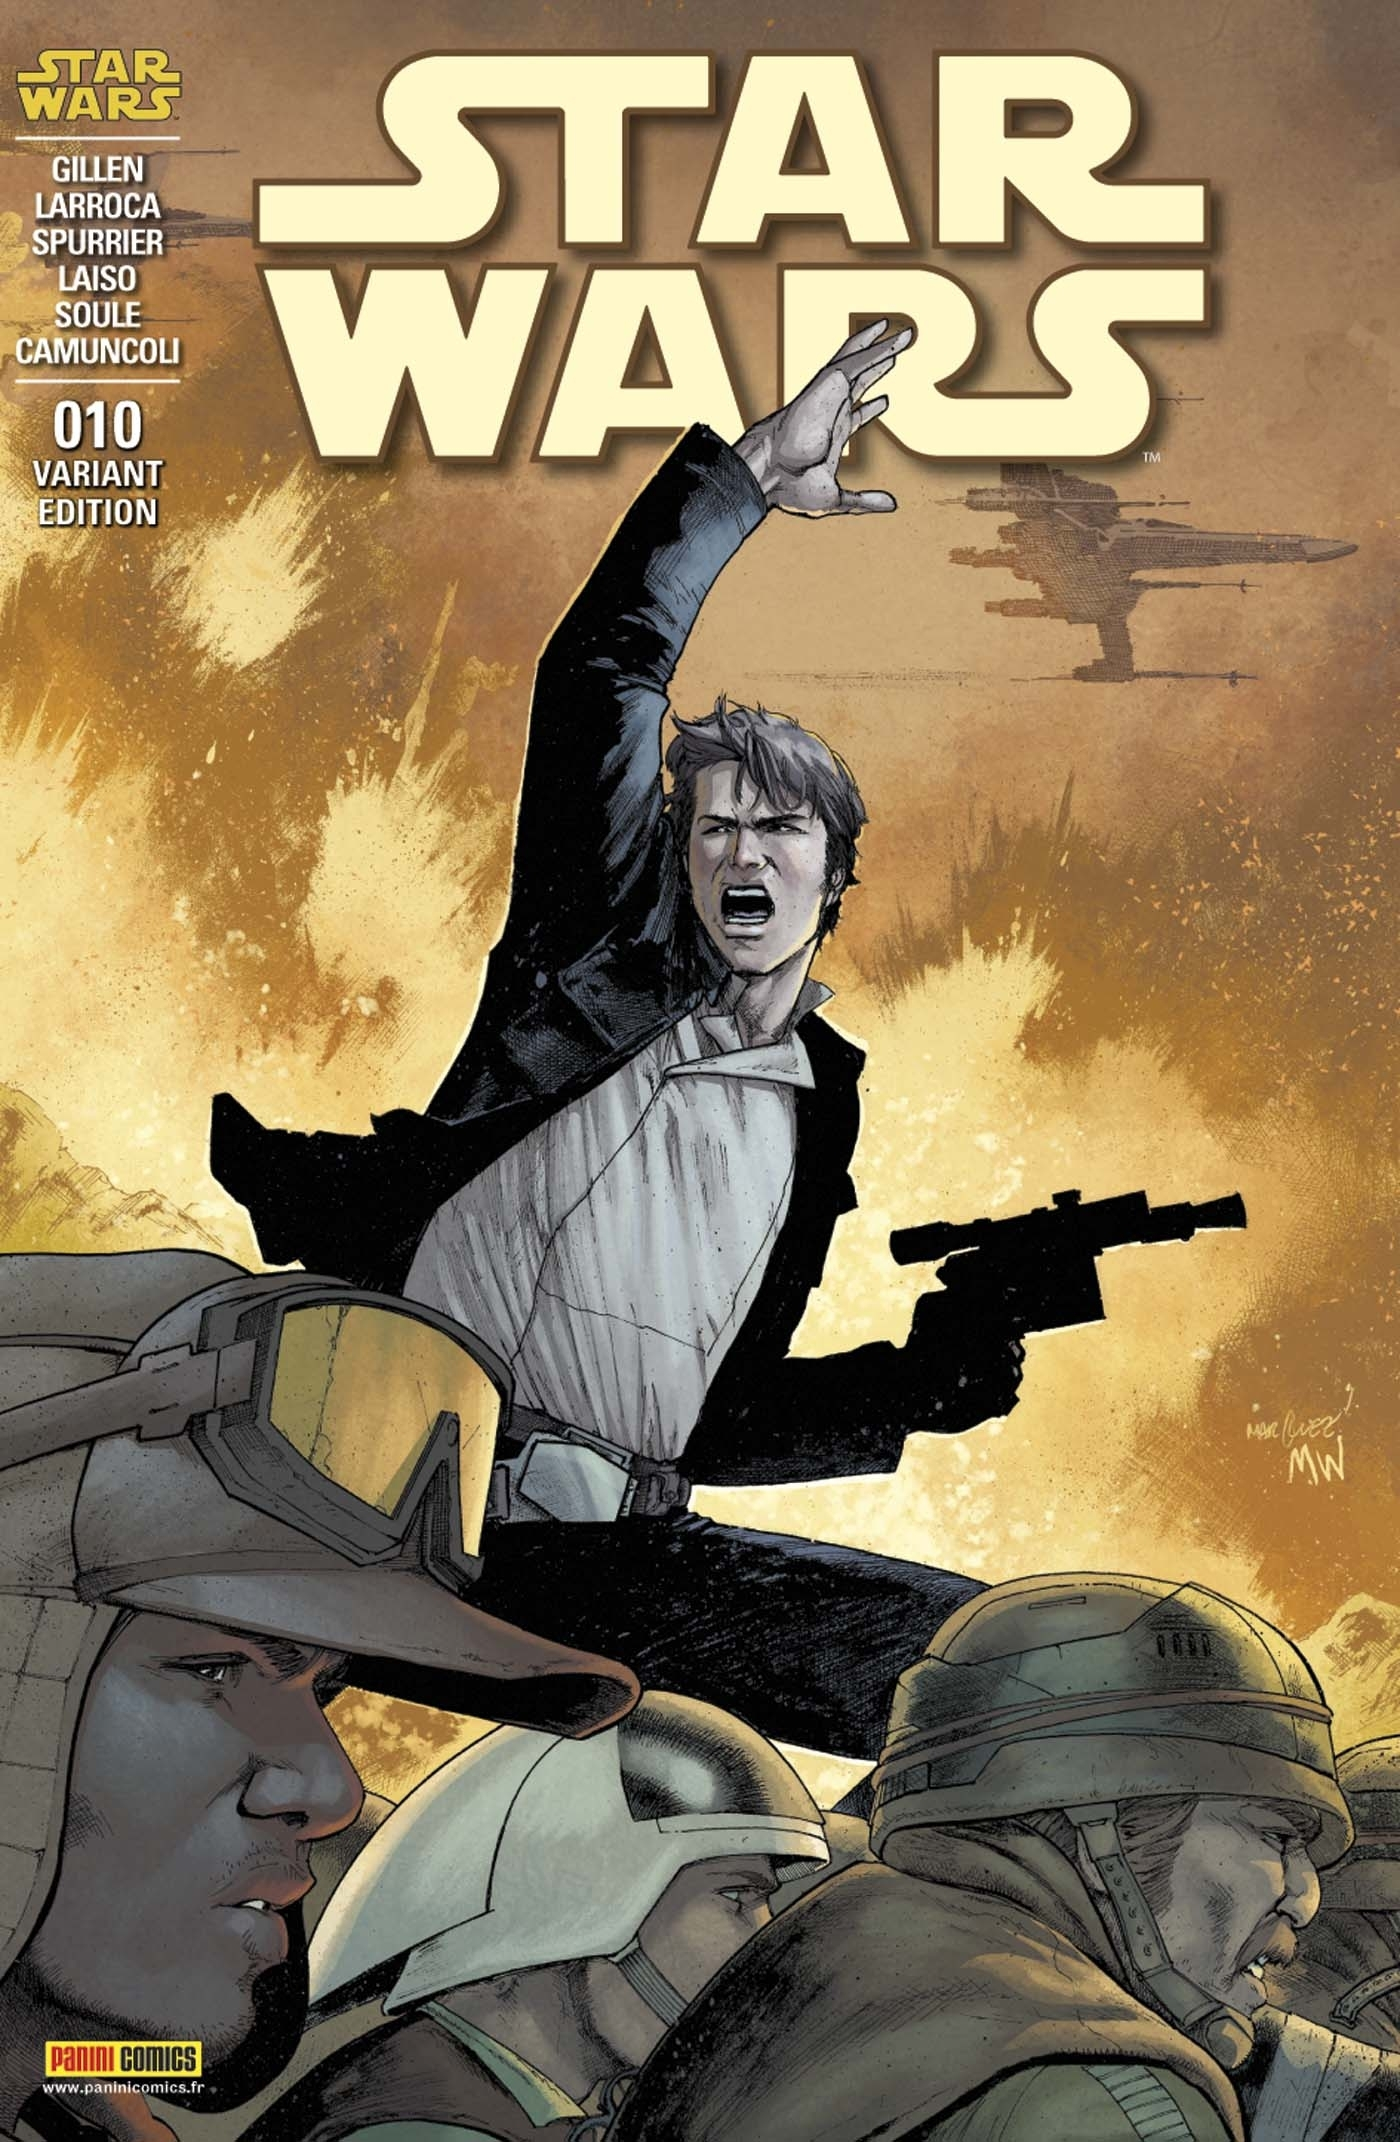 STAR WARS N 10 (COUVERTURE 2/2)